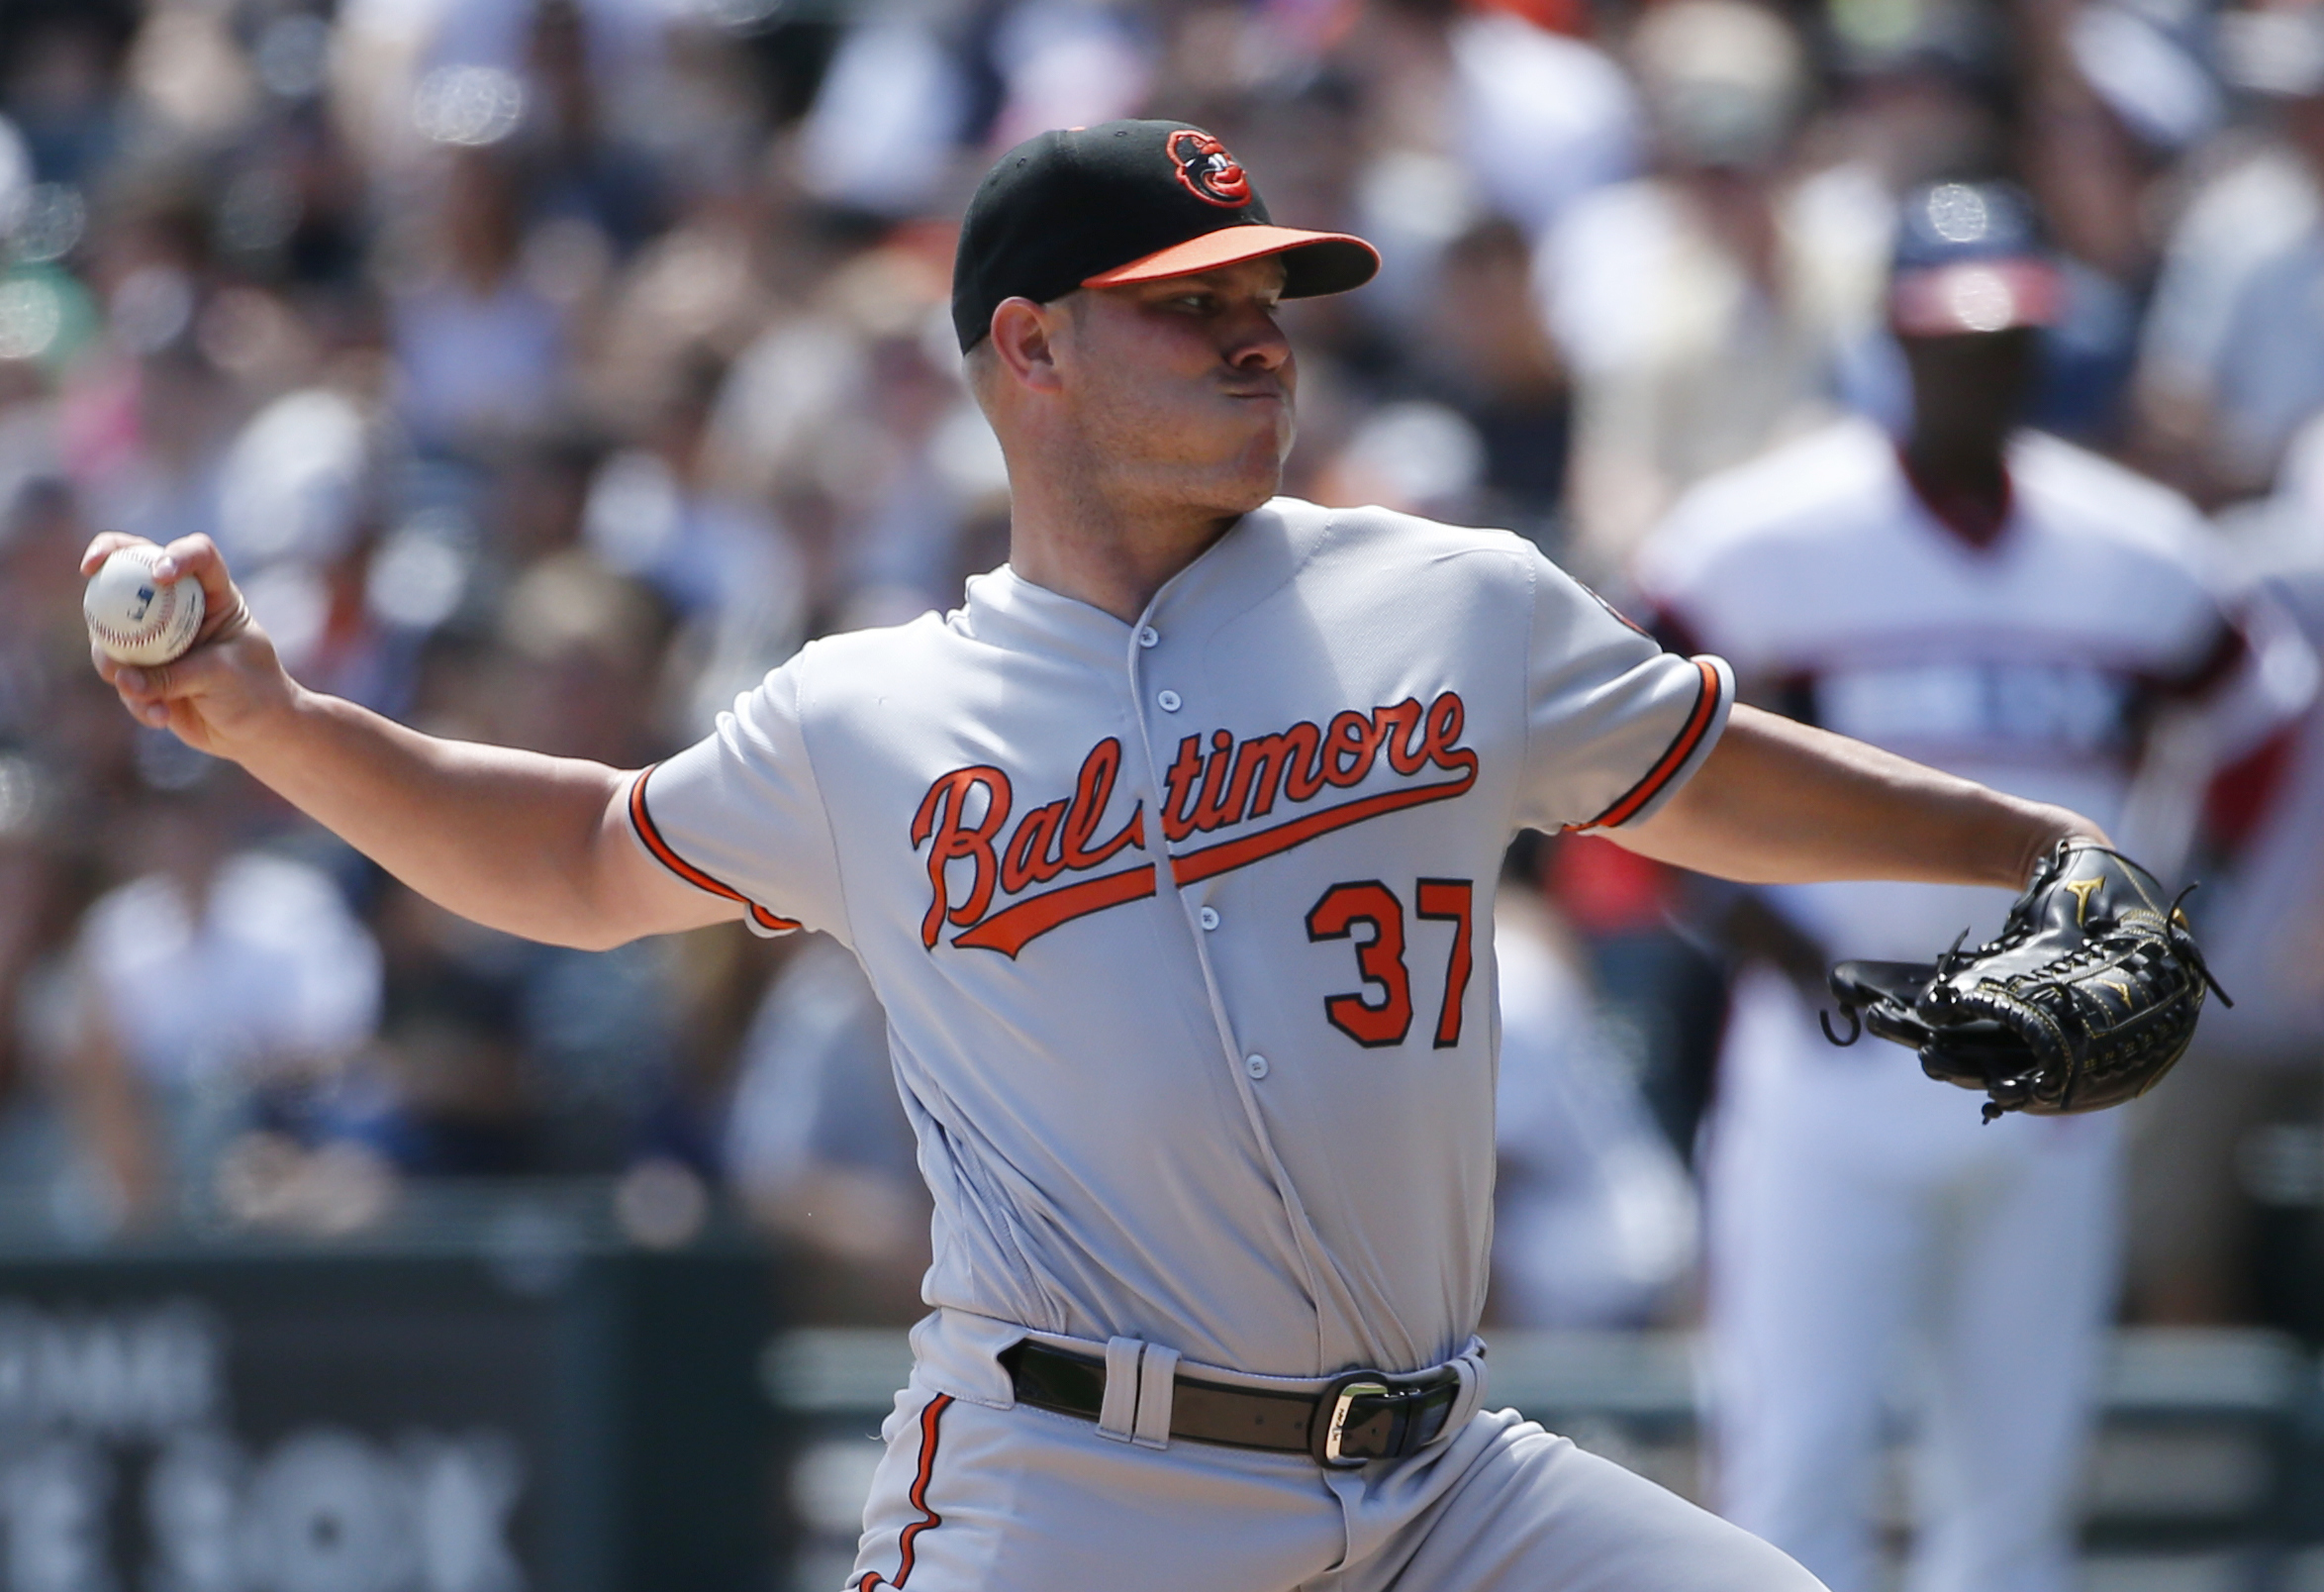 Baltimore Orioles starter Dylan Bundy throws against the Chicago White Sox during the first inning of a baseball game in Chicago, Sunday, Aug. 7, 2016. (AP Photo/Nam Y. Huh)